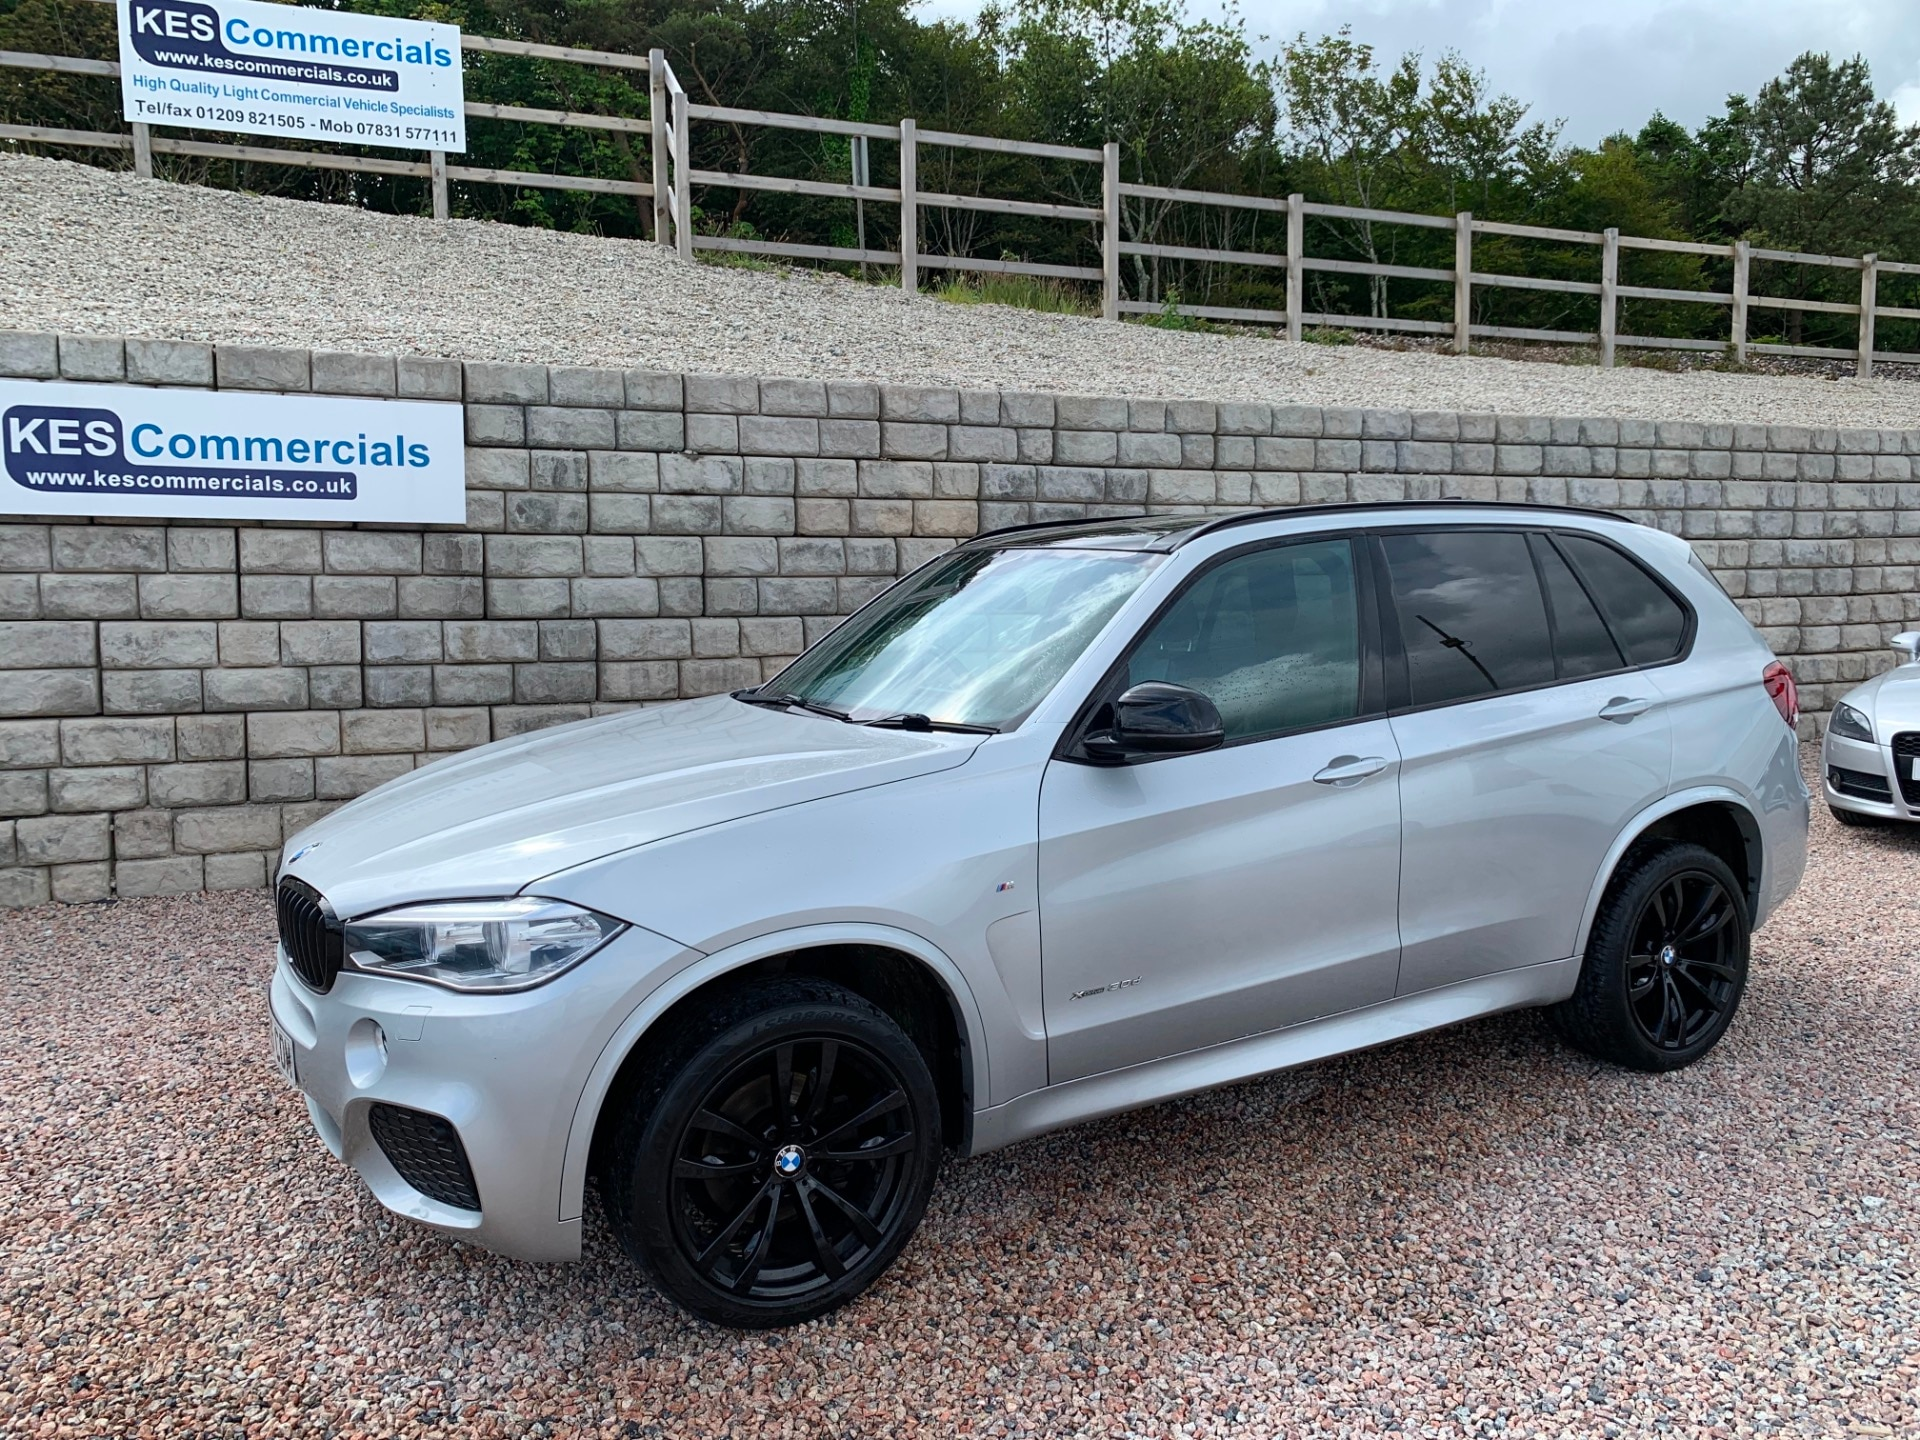 Used BMW X5 2015 for Sale